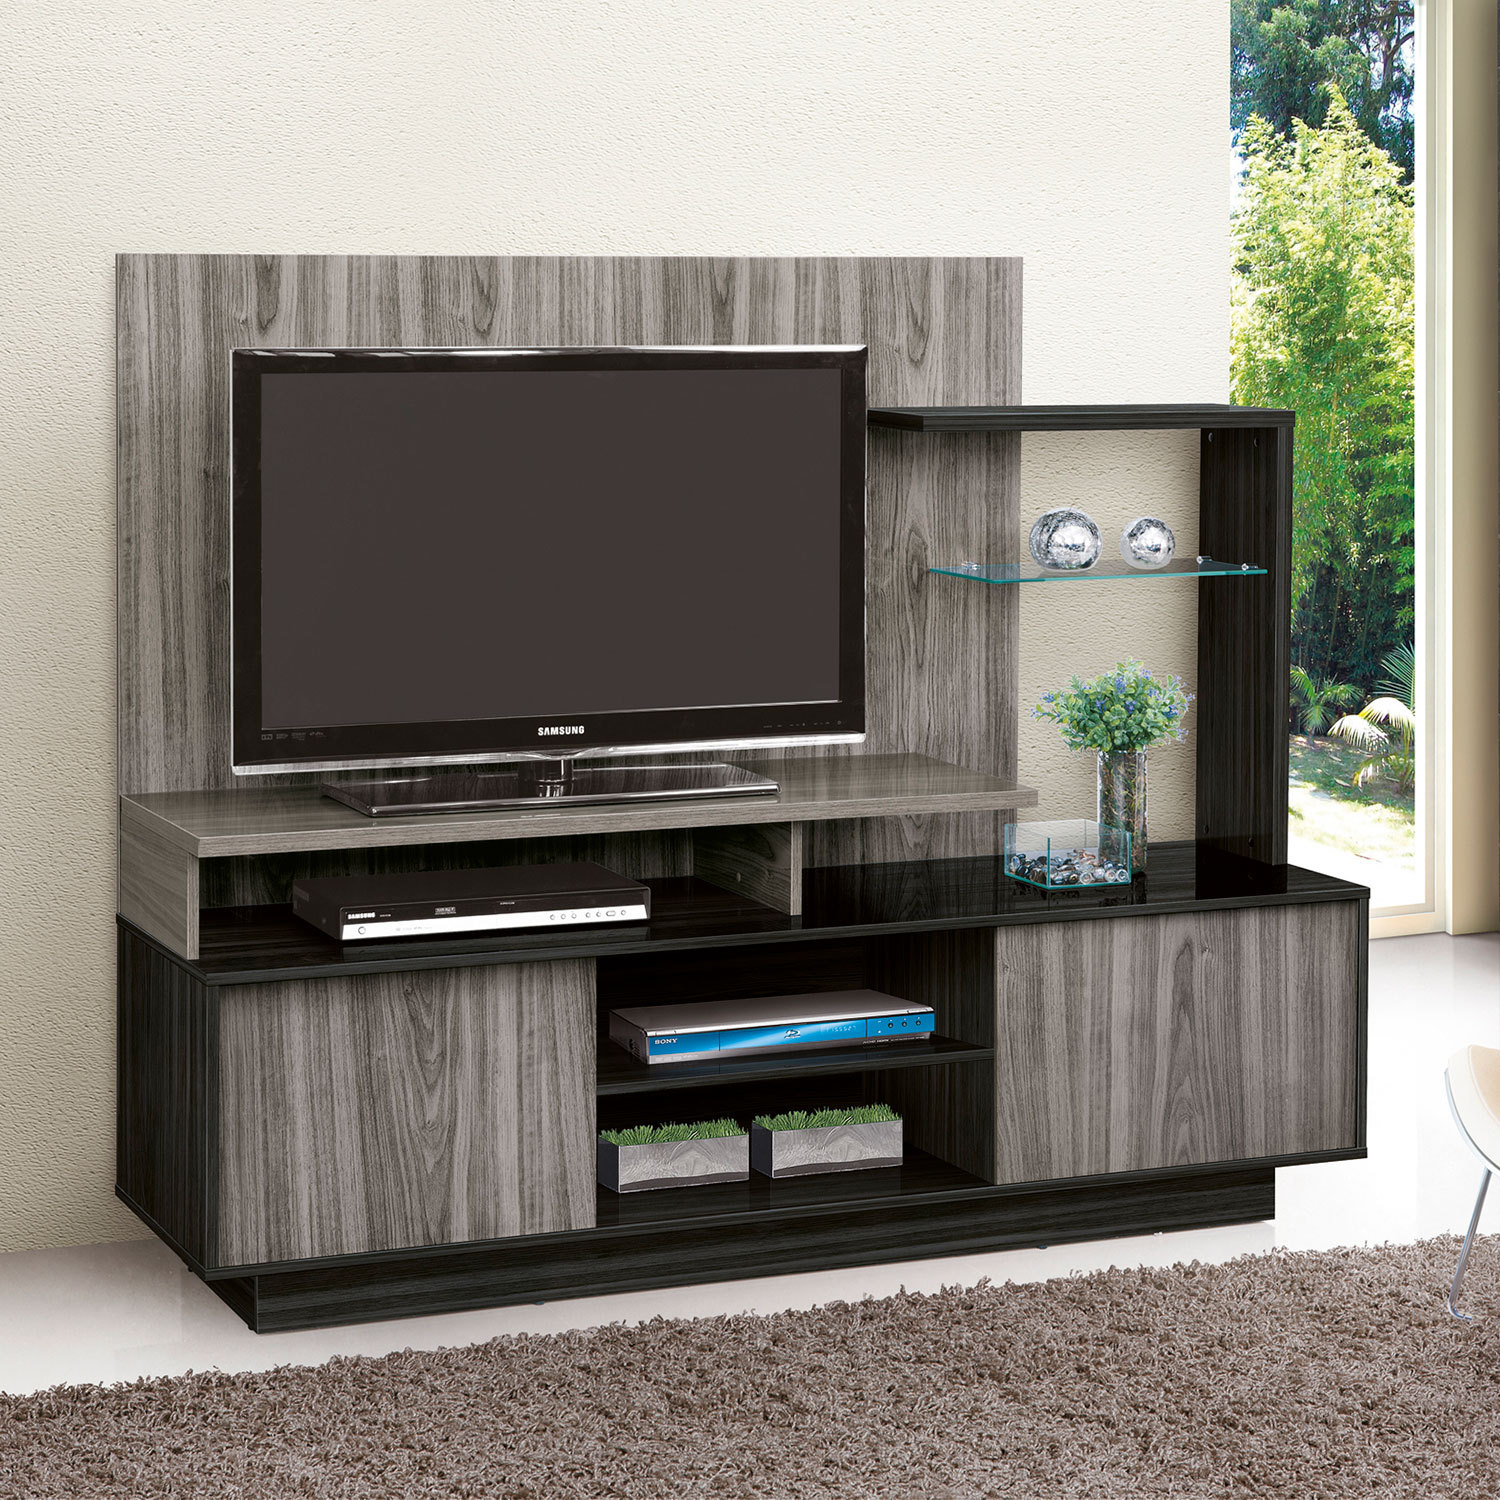 Estante Home Premium Cinza/Grafite - Notavel